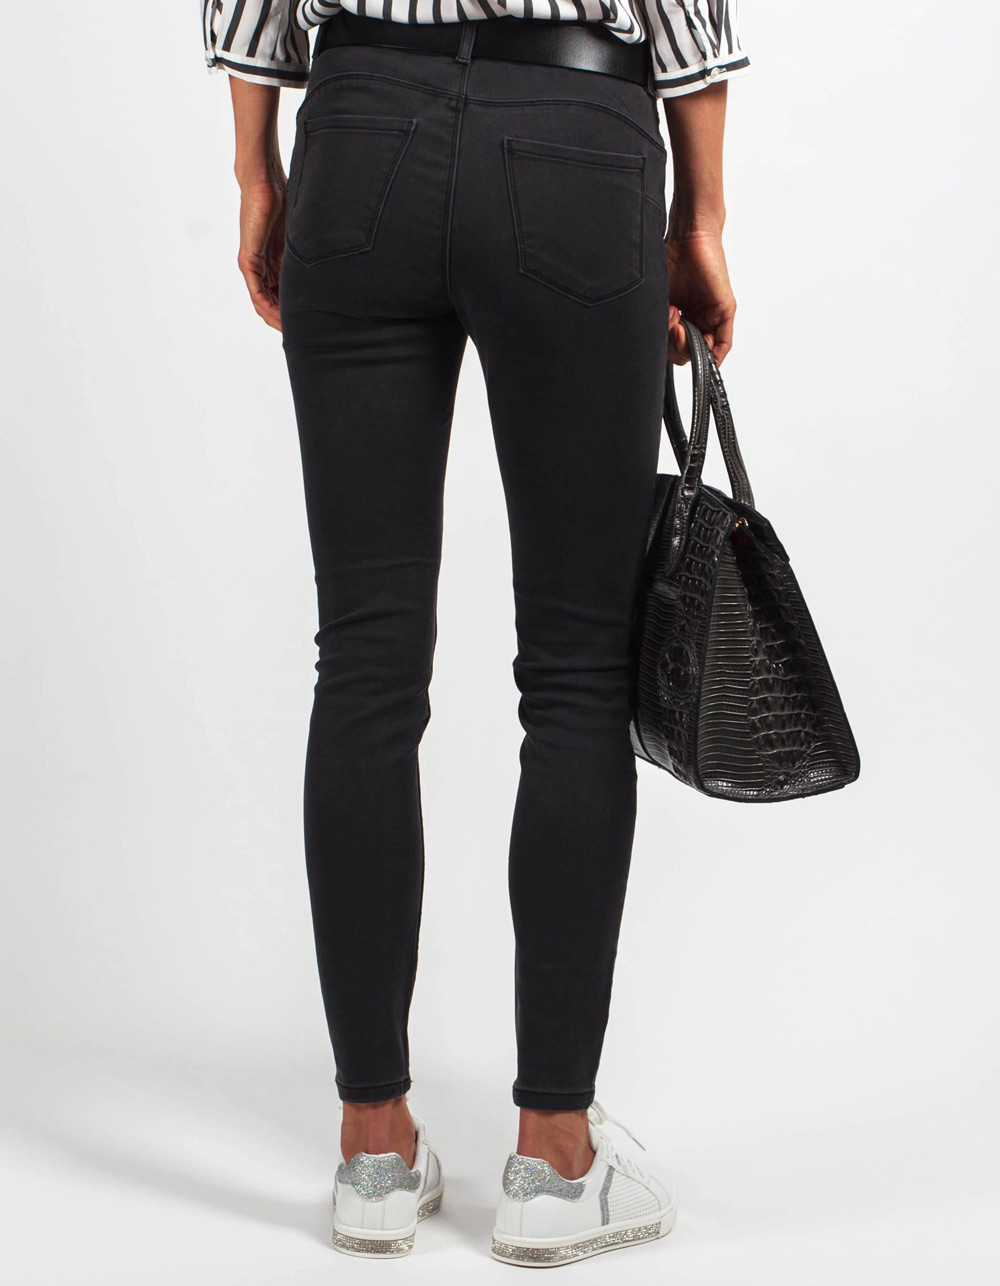 Pantalón tejanero gris mid rise skinny fit - Backside